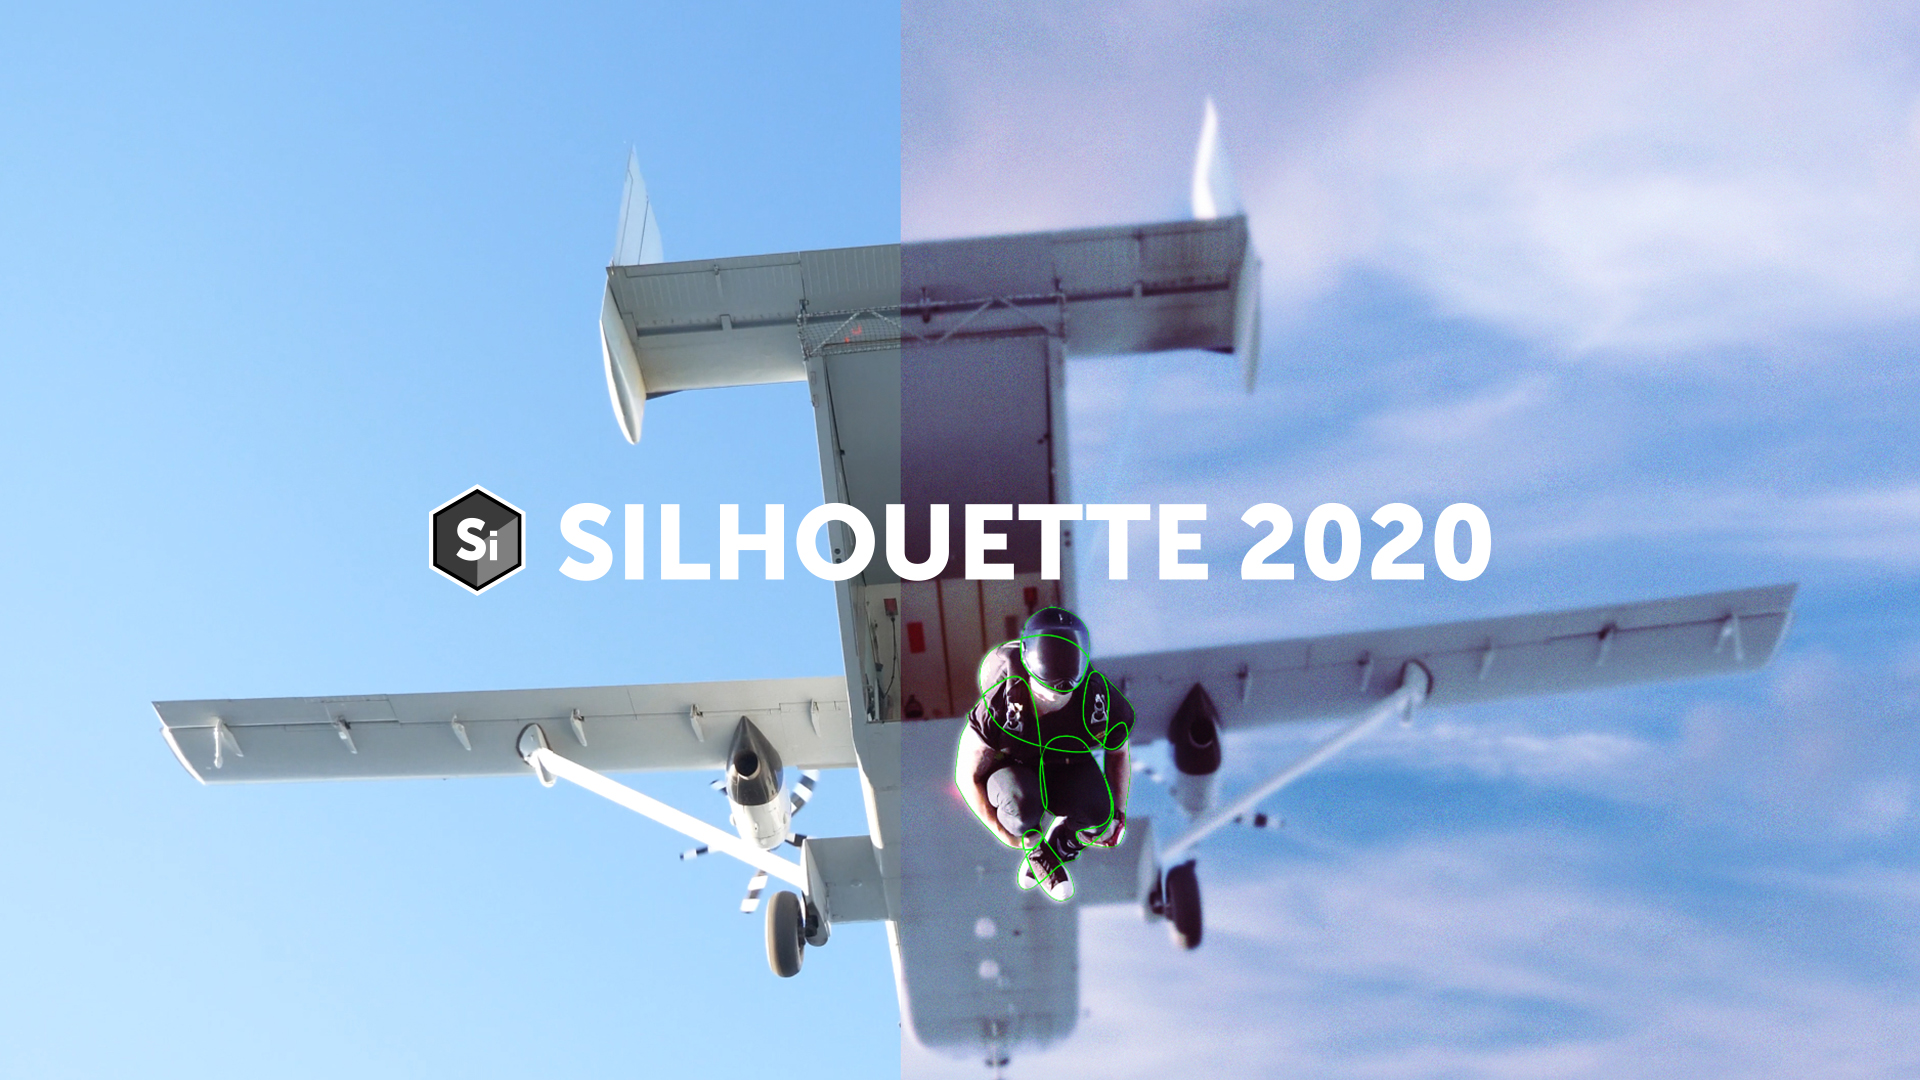 Silhouette 2020 banner image